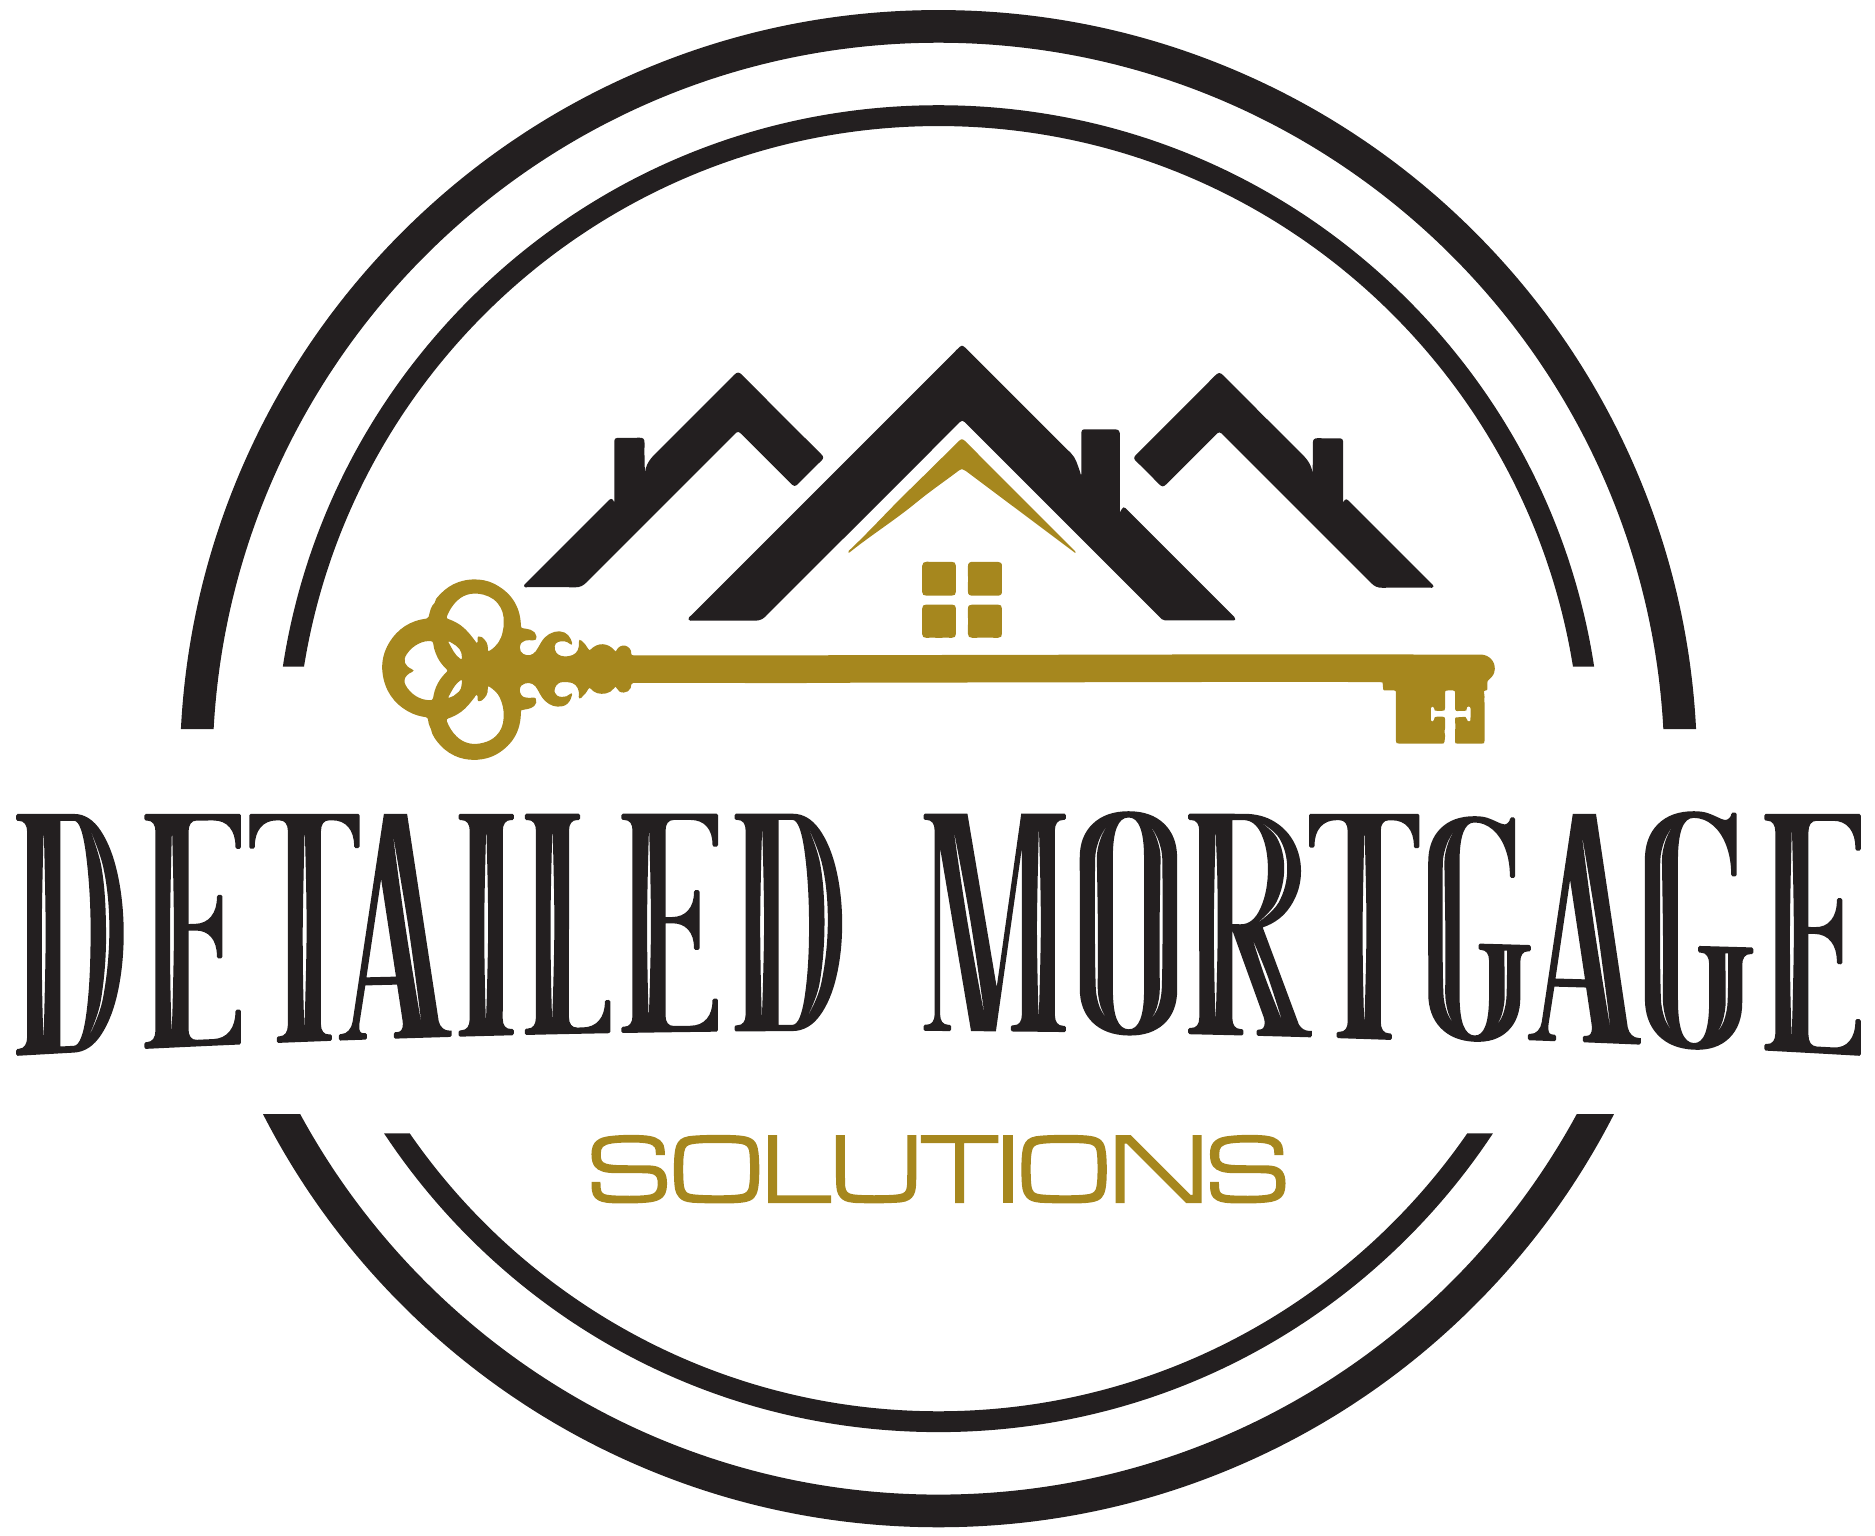 Detailed Mortgage Solutions LLC